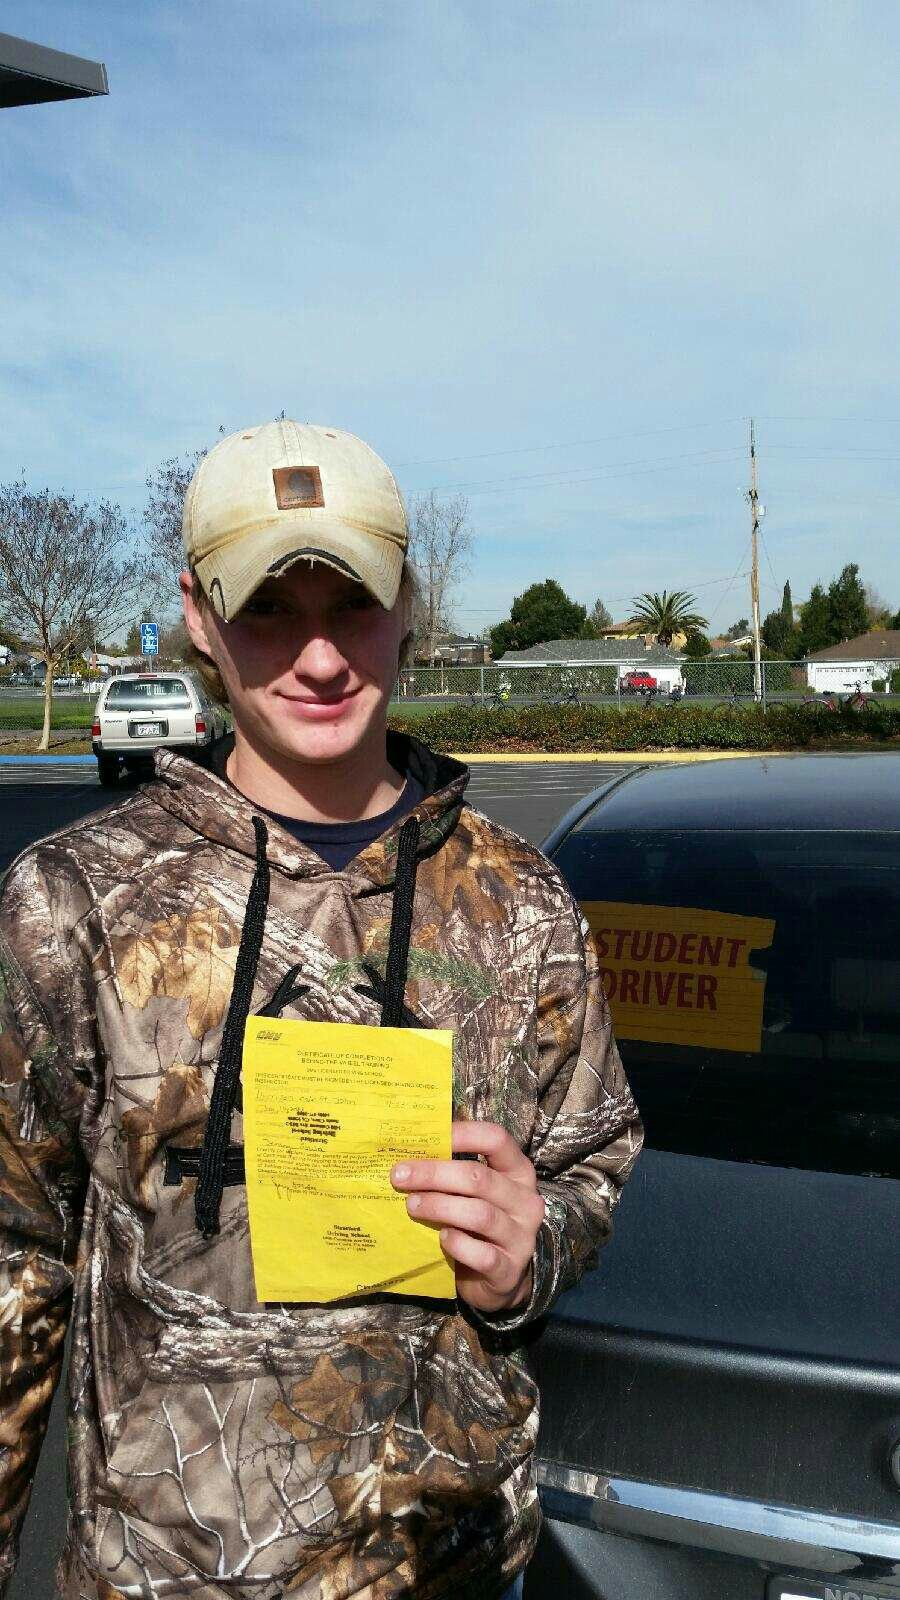 Our Student Who Just Completed Their 6 Hour Behind The Wheel Training Course With Instructor